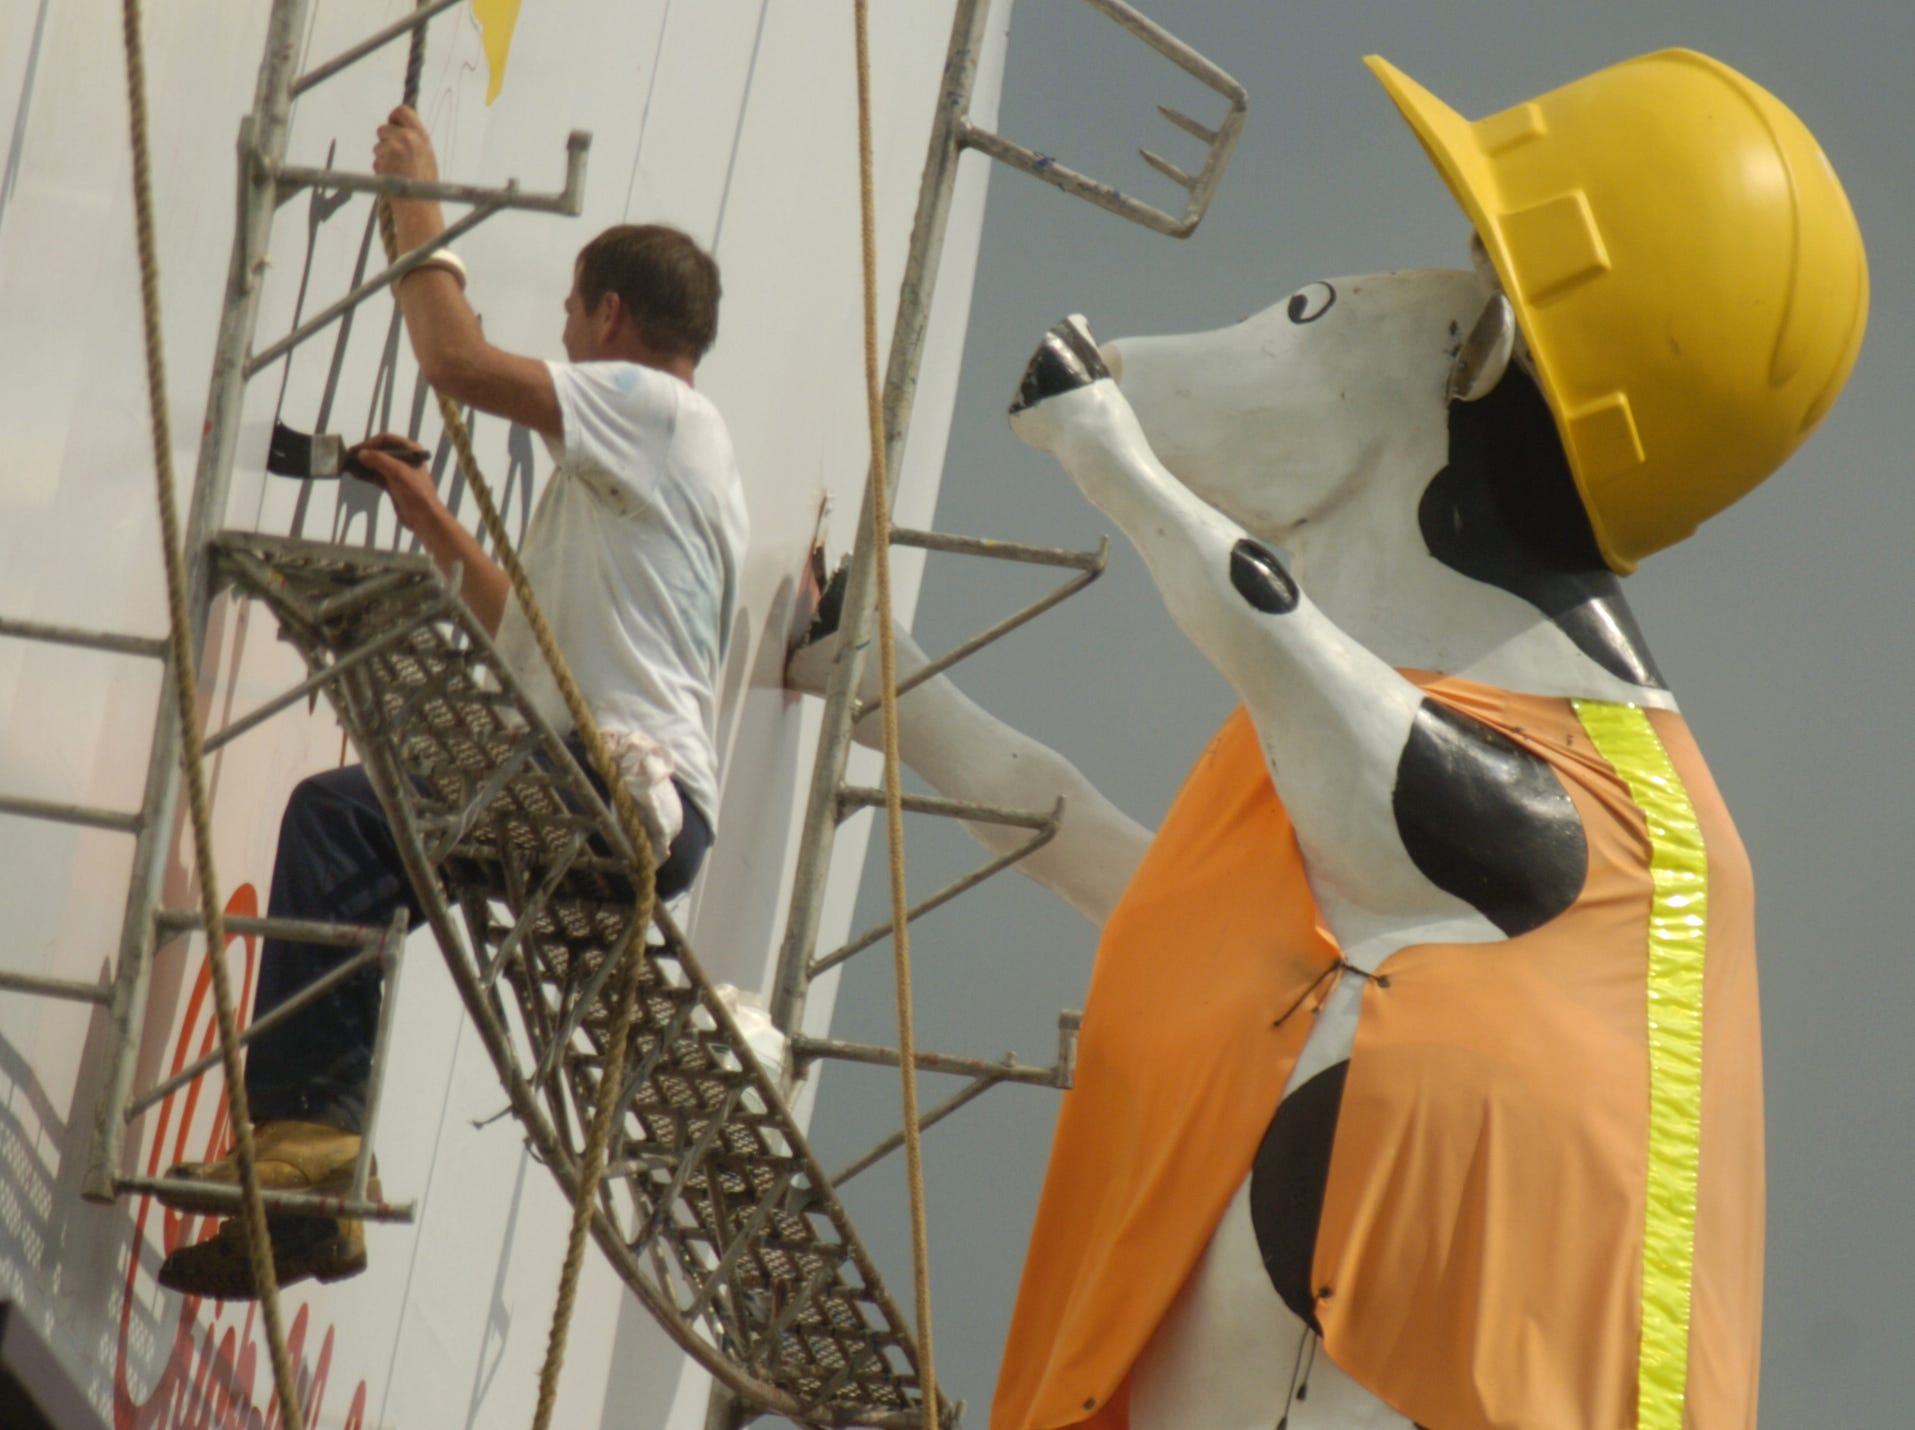 Dale Fisher of D.J. Sign Company, who does sub-contracting work for Douglas Outdoor Advertising of Knoxville, paints a new Chick-Fil-A sign on a billboard as he appears to be imitating a giant cow dressed in a construction outfit which is part of the billboard. Fisher was working with Jake Crawford, not pictured, high above Interstate 40 near the Cedar Bluff Exit Monday afternoon. Crawford says that he and Fisher paint two different Chick-Fil-A billboards along the Interstate for Douglas about once a year. 6/19/2004